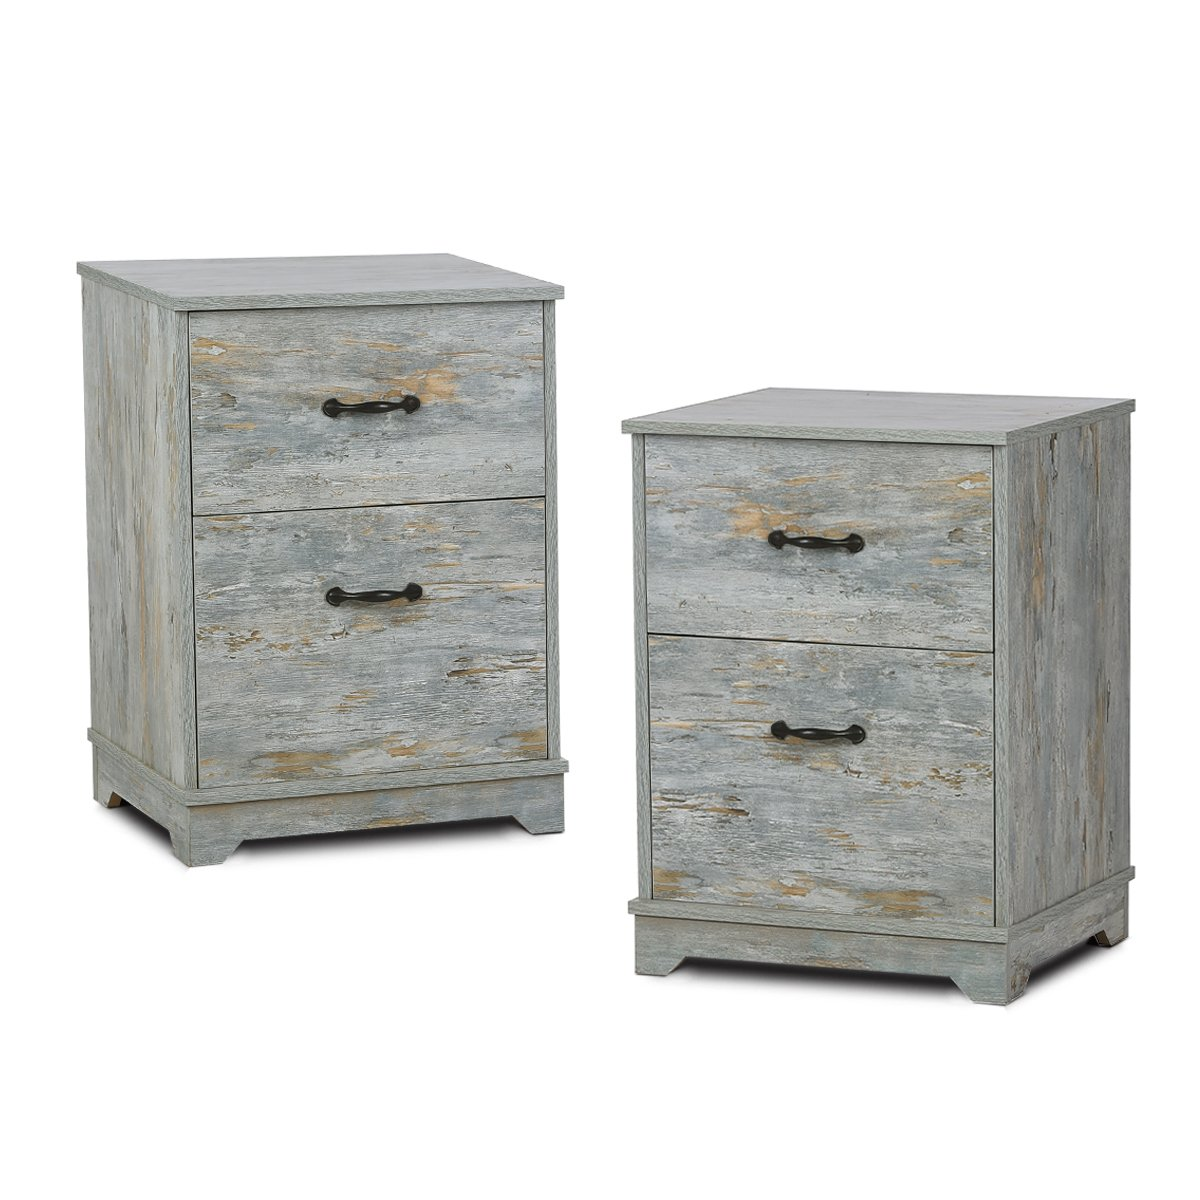 2 Drawer Wood Nightstand with Antique Metal Handle in OAK End Table by DEVAISE (Blue Oak-2 drawer(Set of 2))